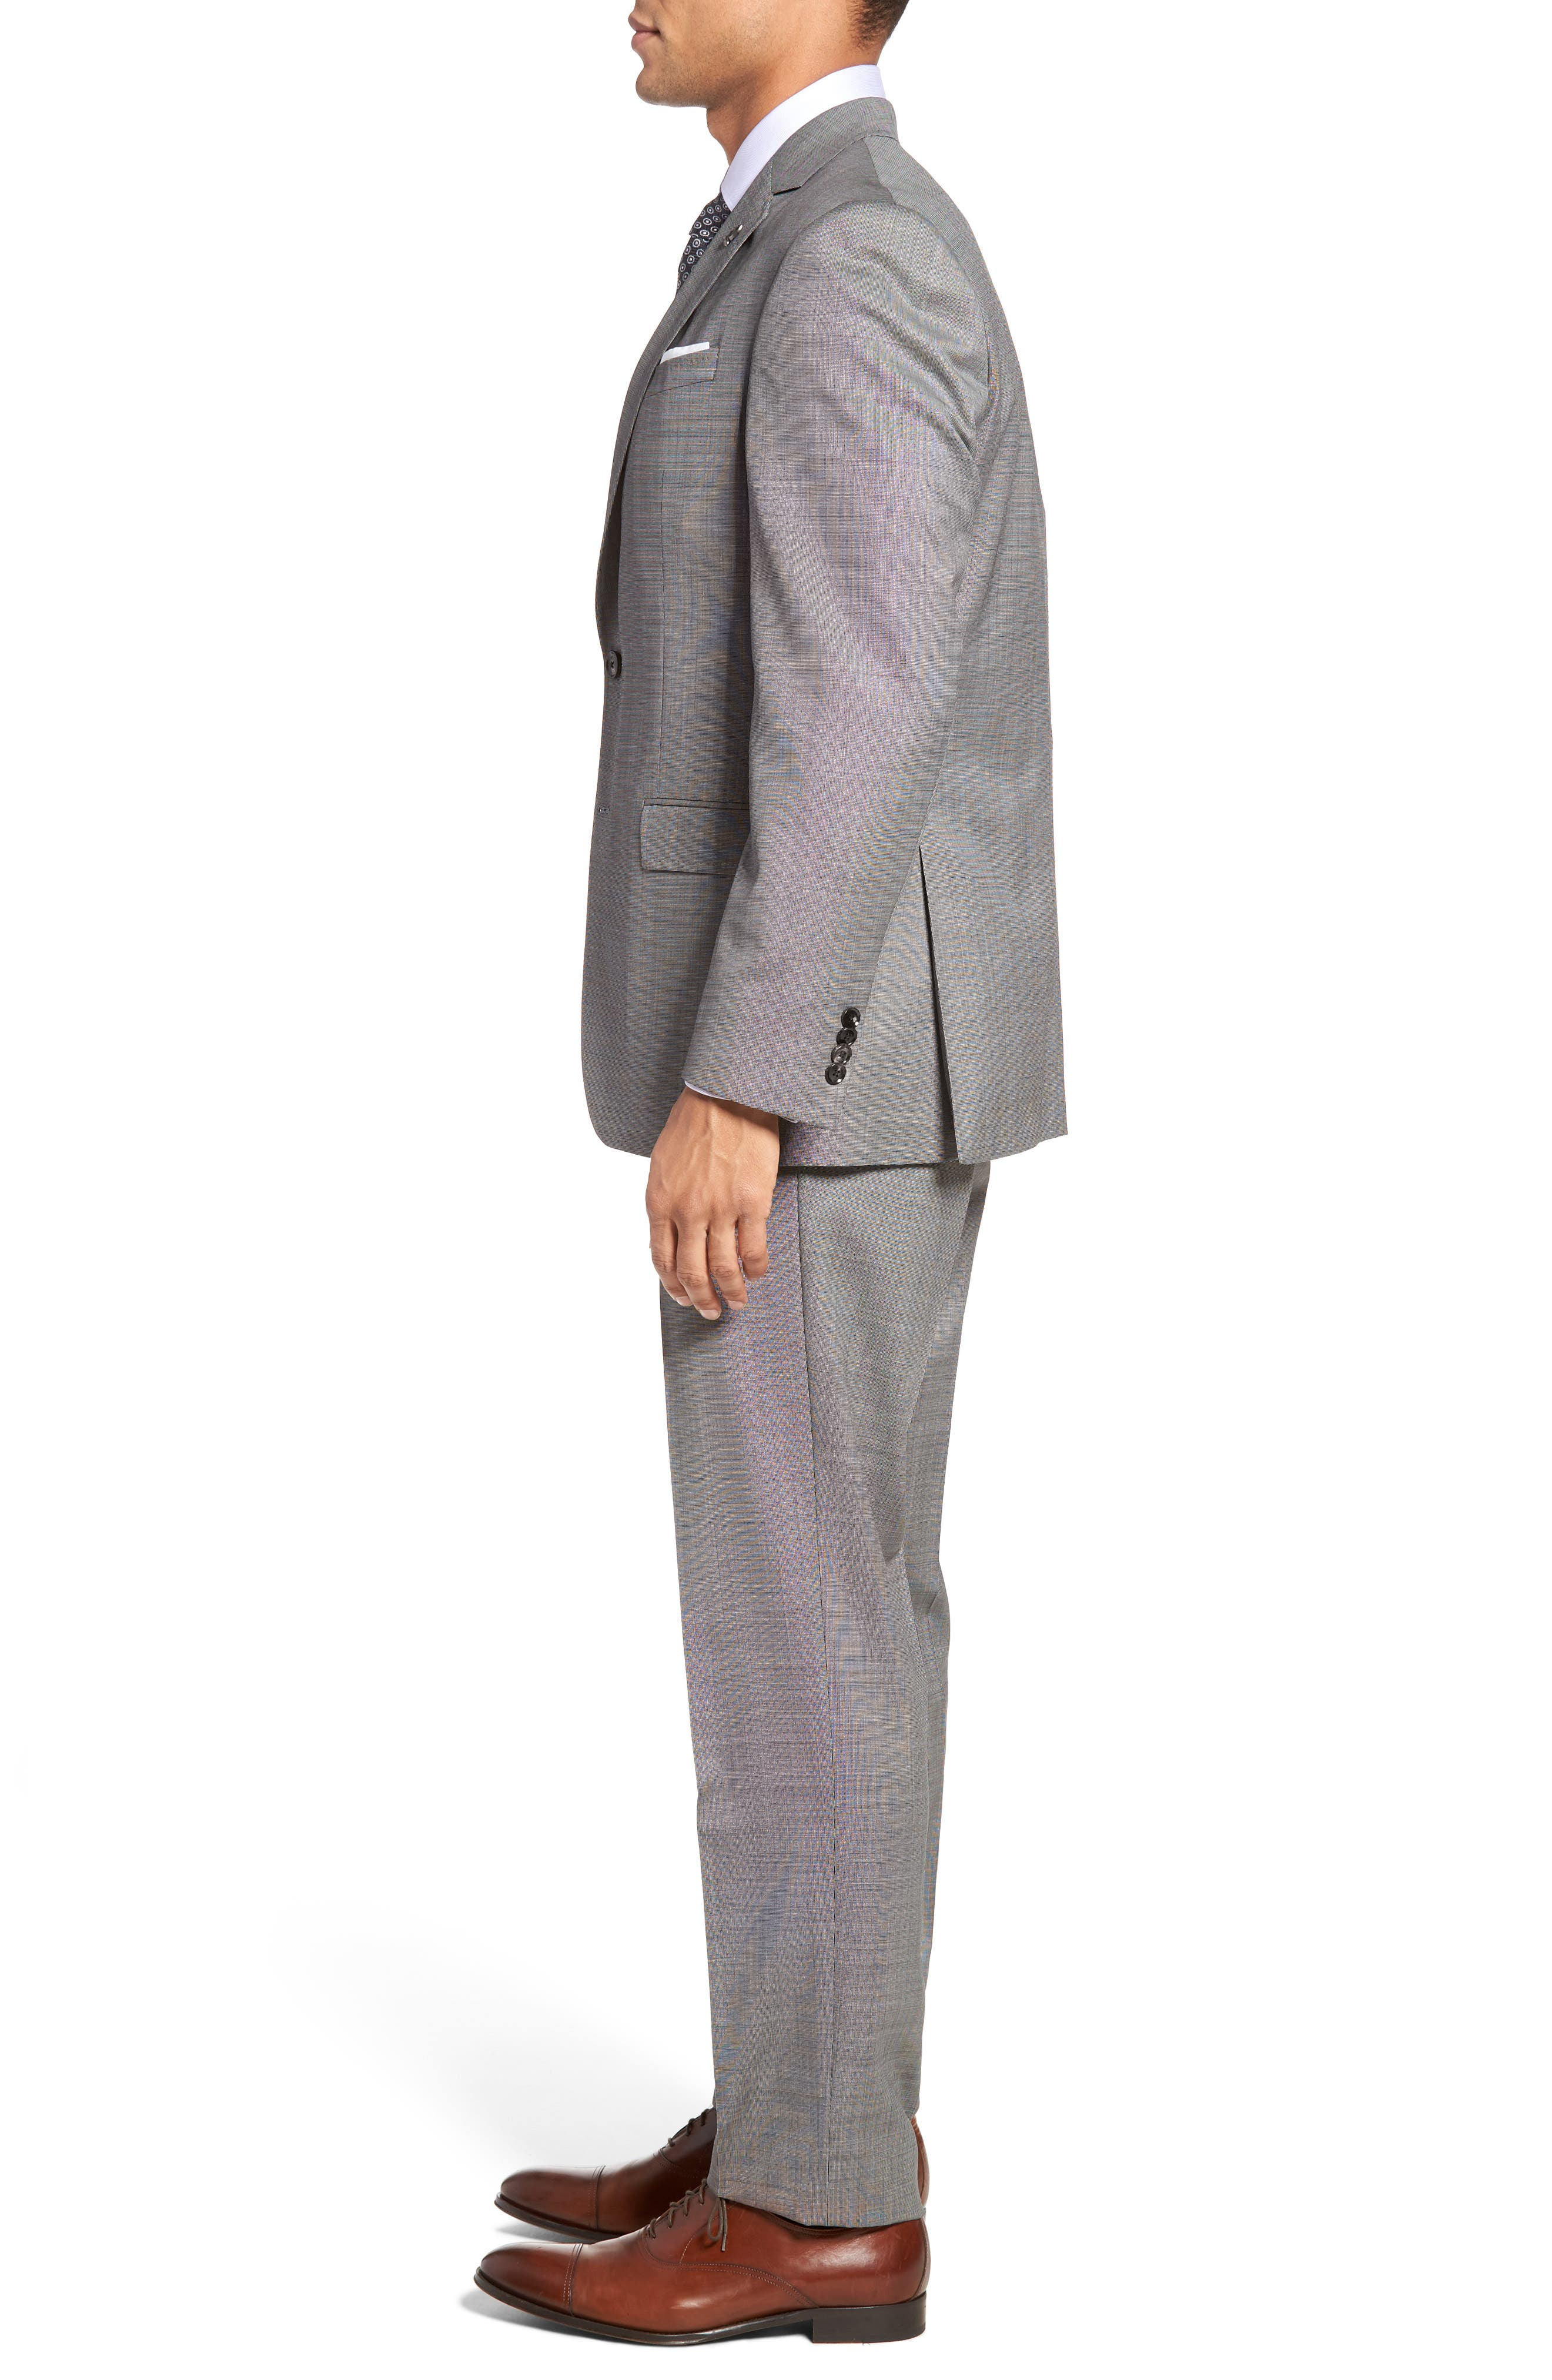 Jay Trim Fit Solid Wool Suit,                             Alternate thumbnail 3, color,                             Light Grey